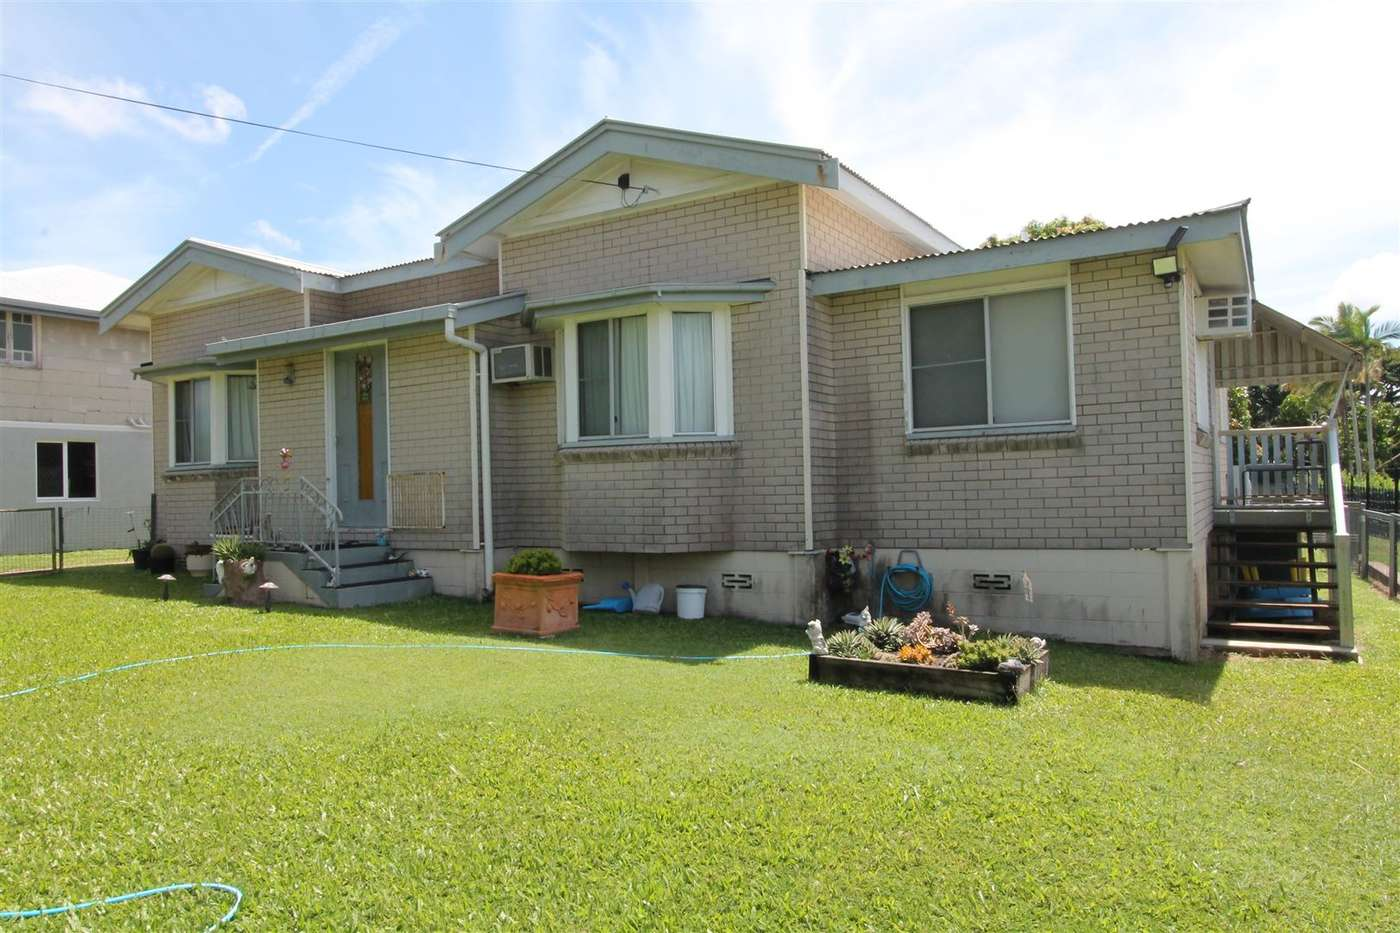 Main view of Homely house listing, 26 Norham Road, Ayr, QLD 4807